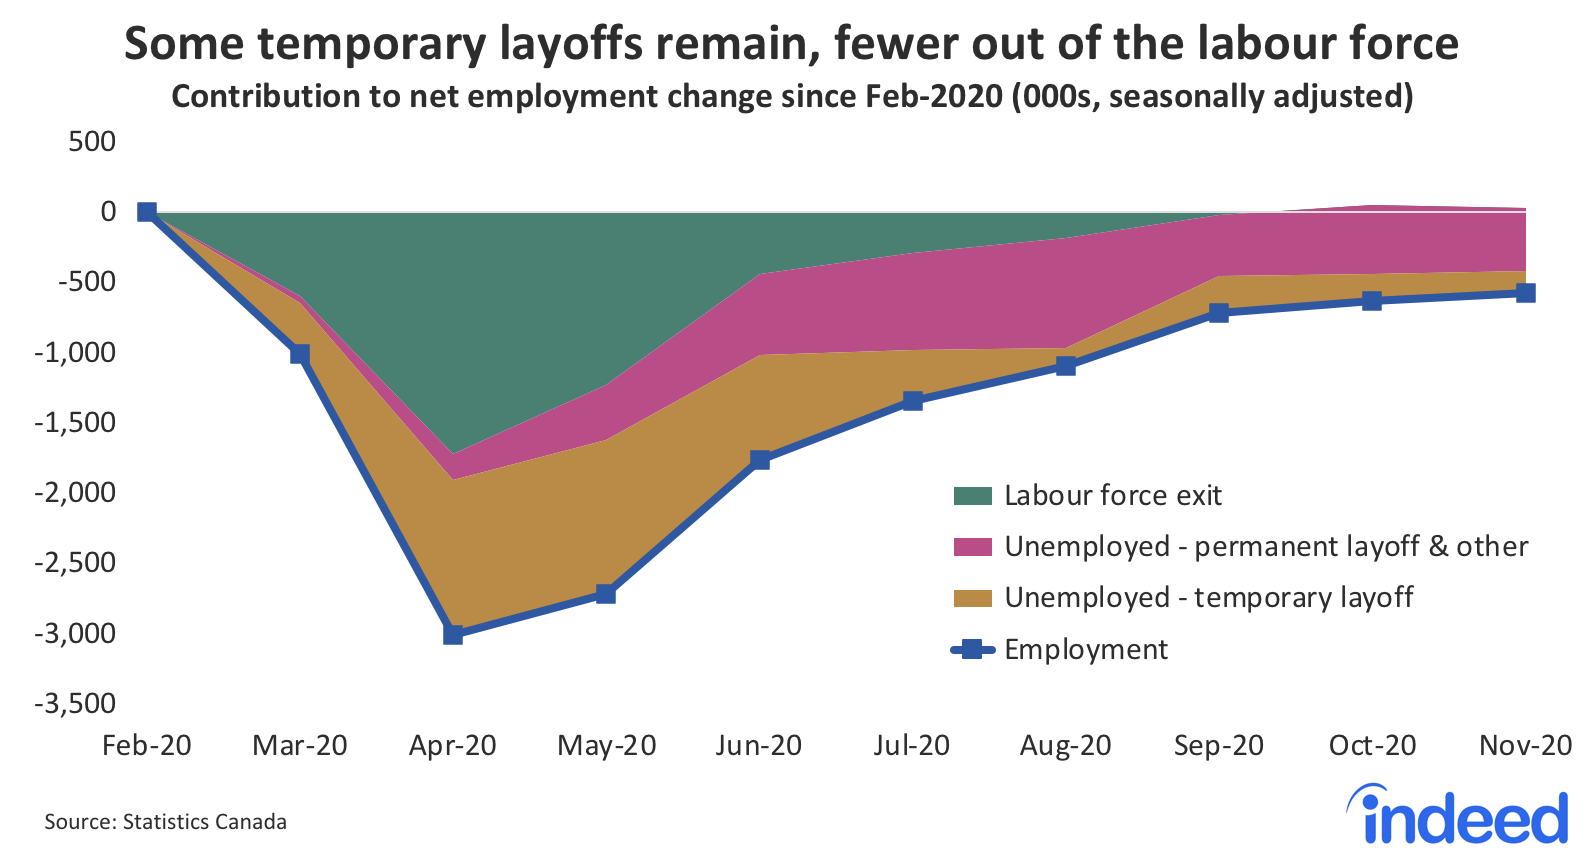 Line graph showing some temporary layoffs remain, but fewer out of the labor force